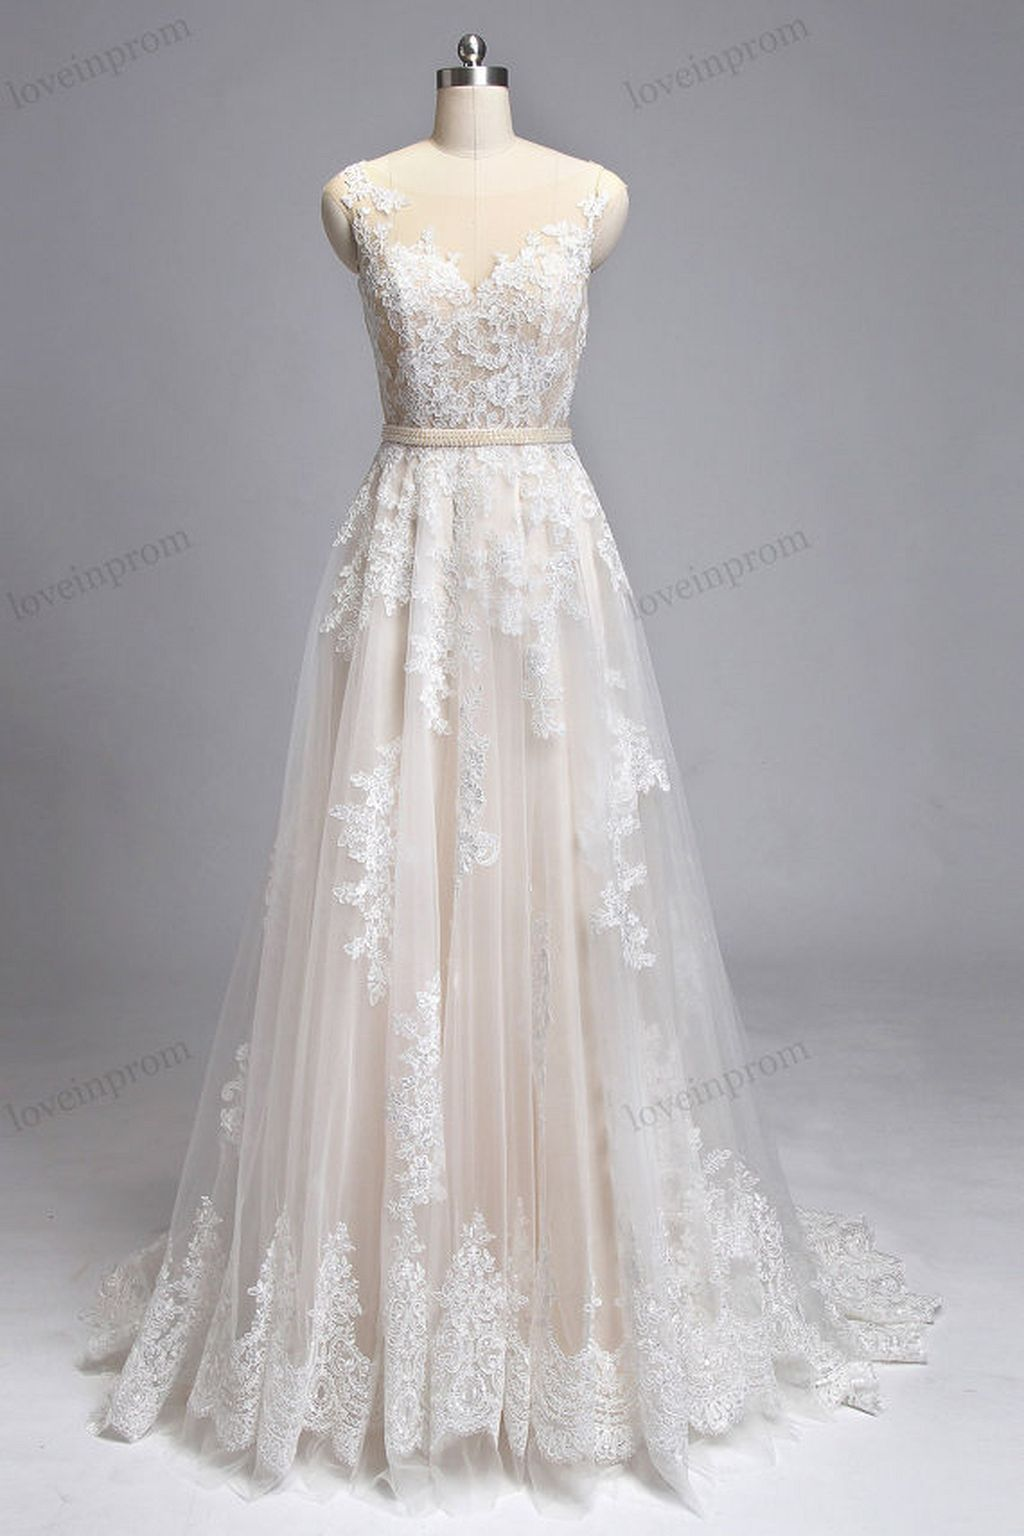 vintage wedding dress ideas pinterest dress ideas vintage